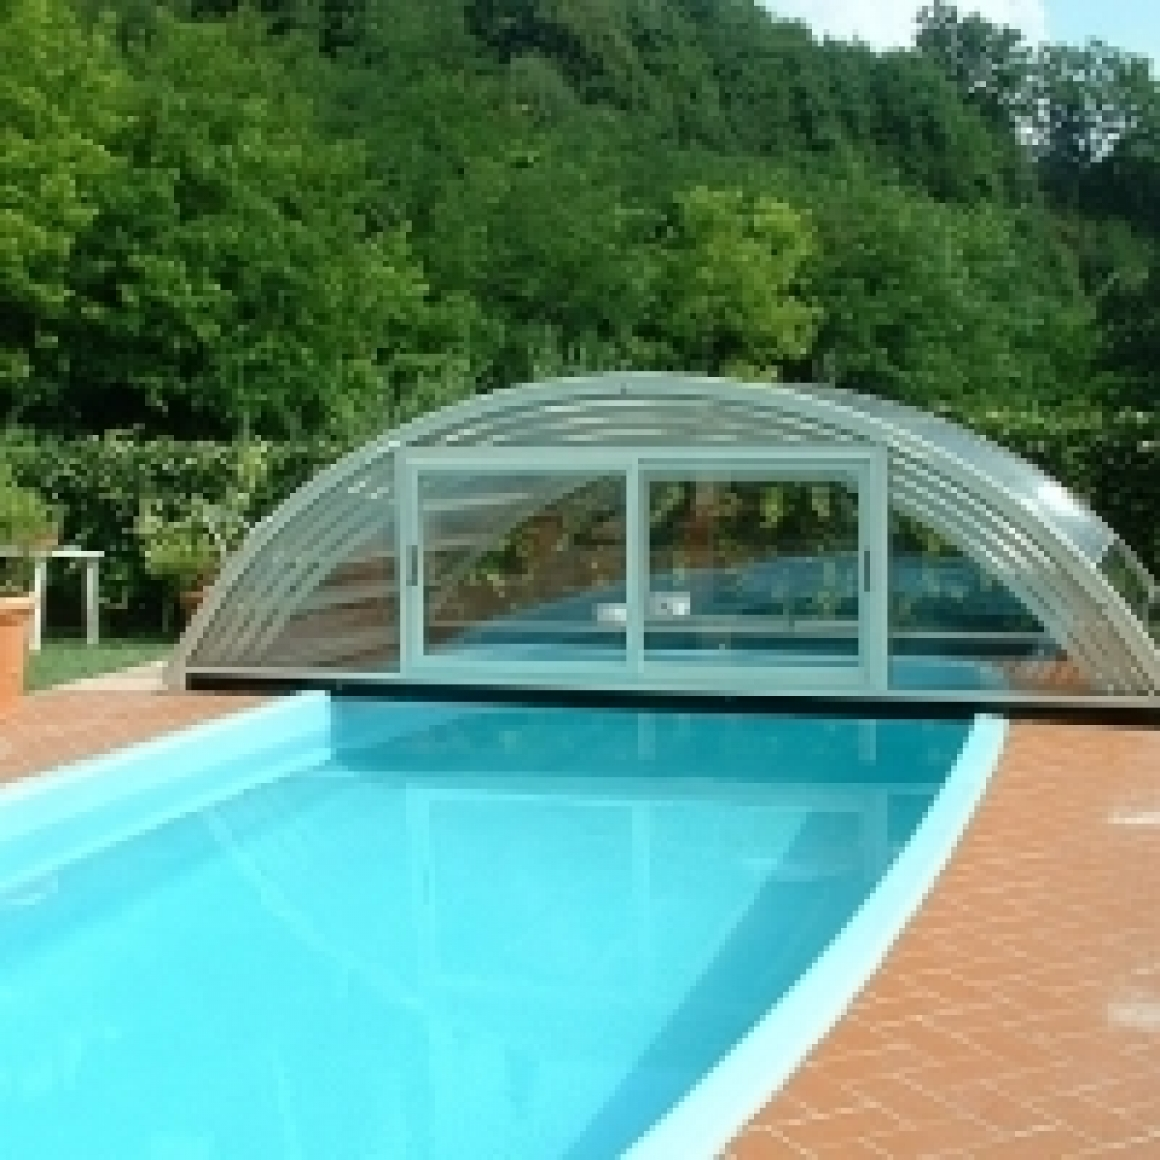 Home counties pools hot tubs pools cover systems enclosures retractable enclosures Retractable swimming pool enclosures